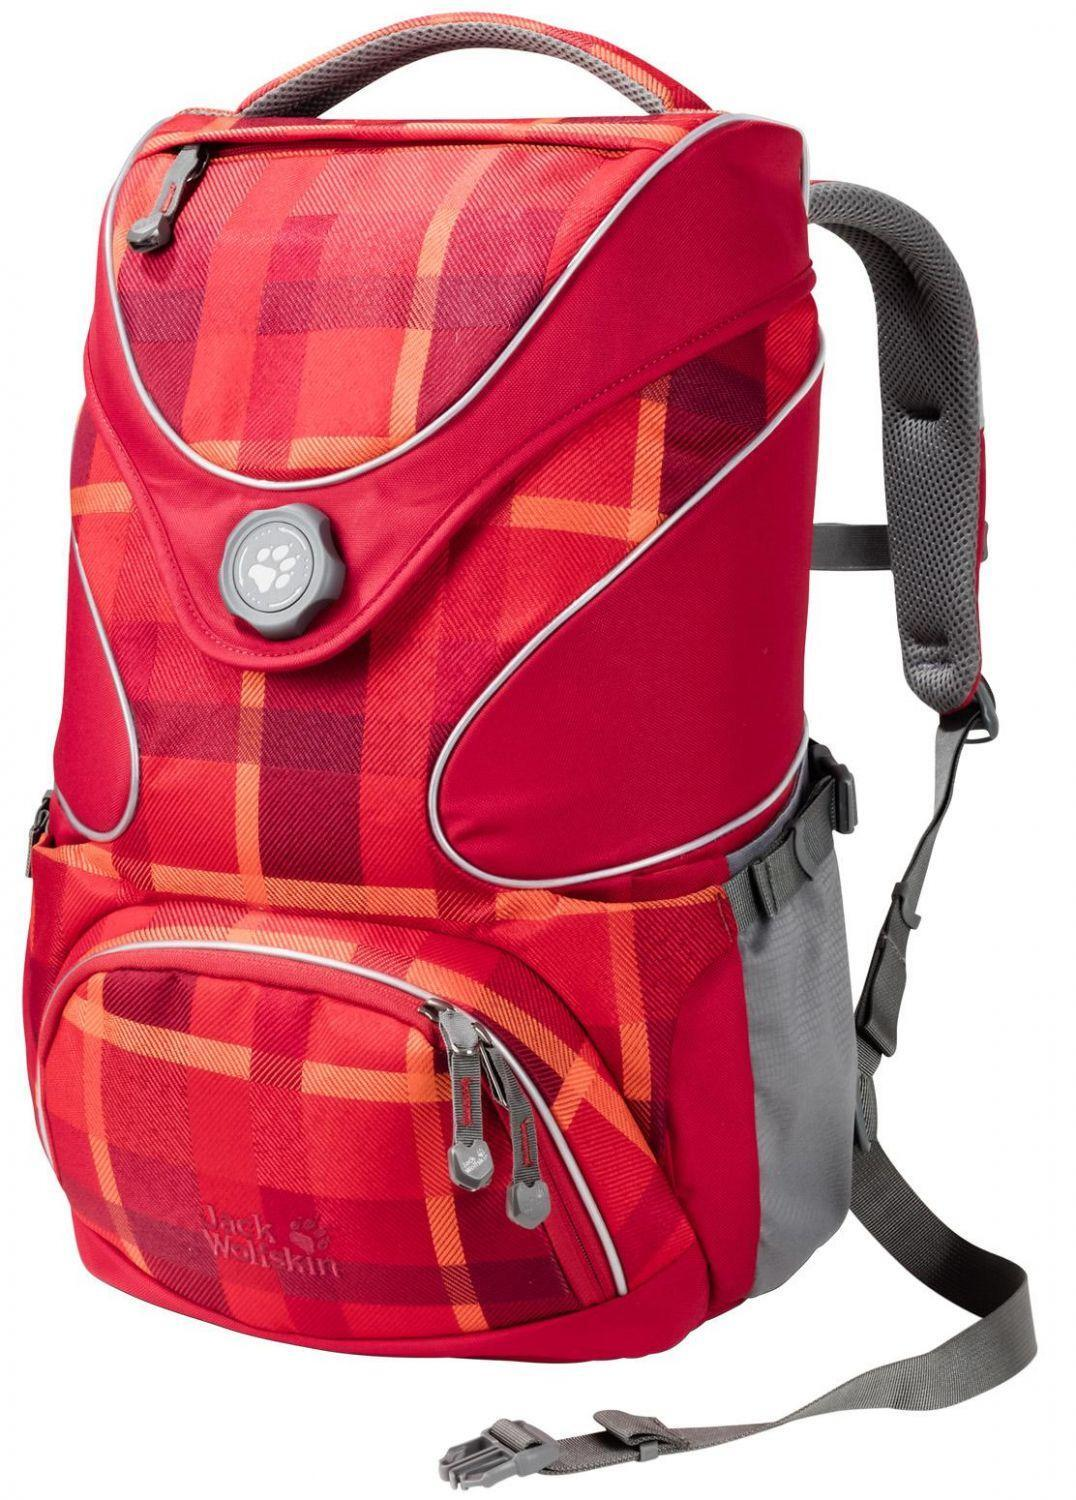 jack-wolfskin-ramson-top-20-pack-schulrucksack-farbe-7941-indian-red-woven-check-